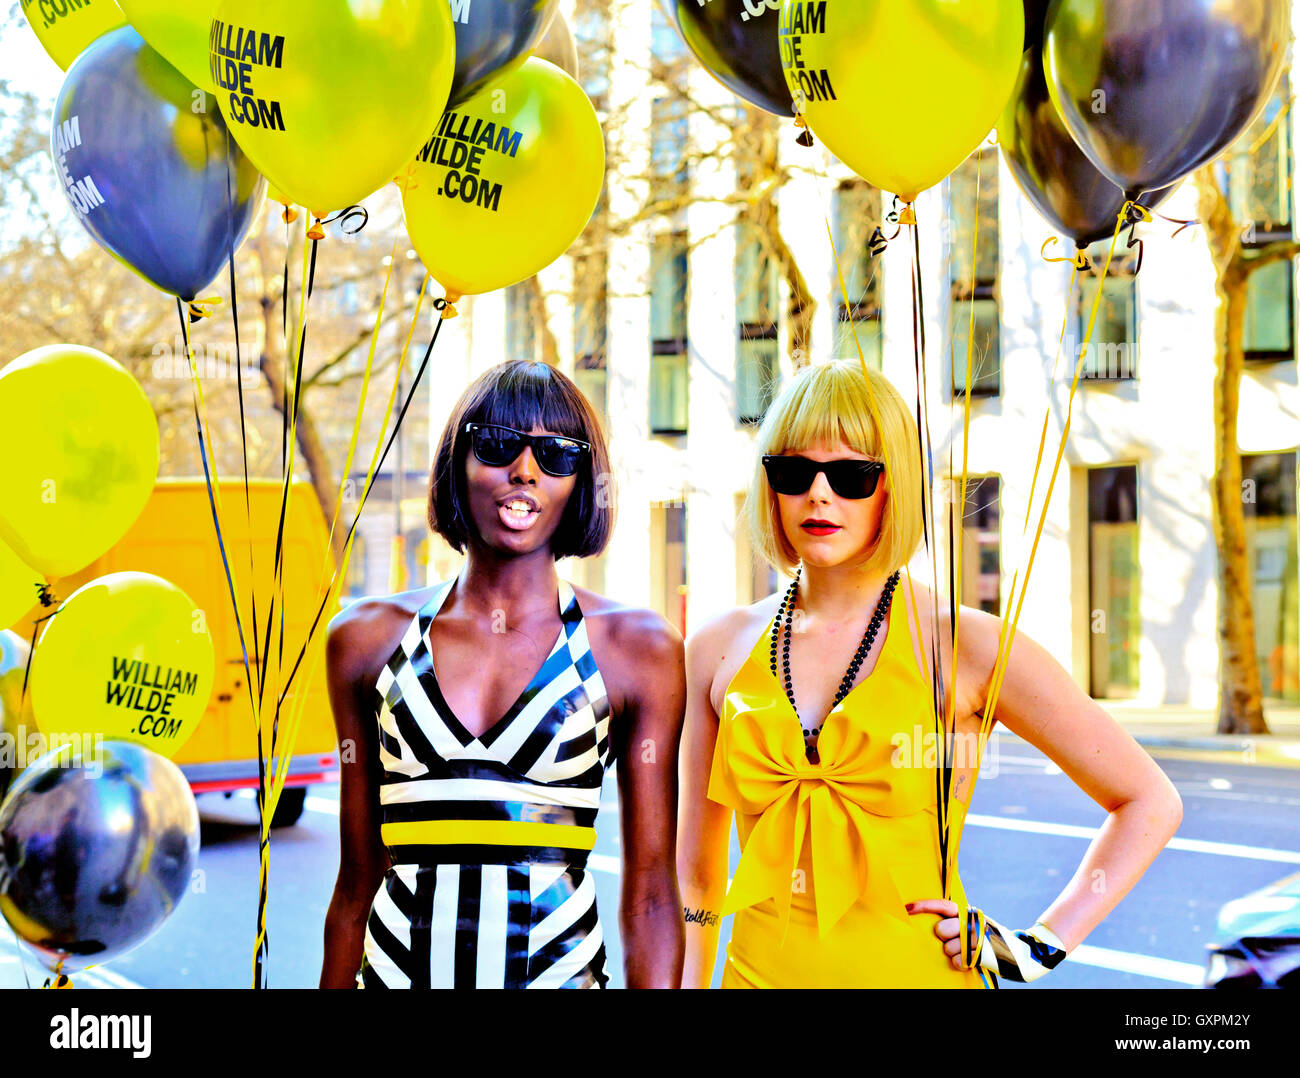 London Fashion Week Feb. 2013 Attractive Fashion Models with balloons promoting William Wilde exquisite handmade - Stock Image